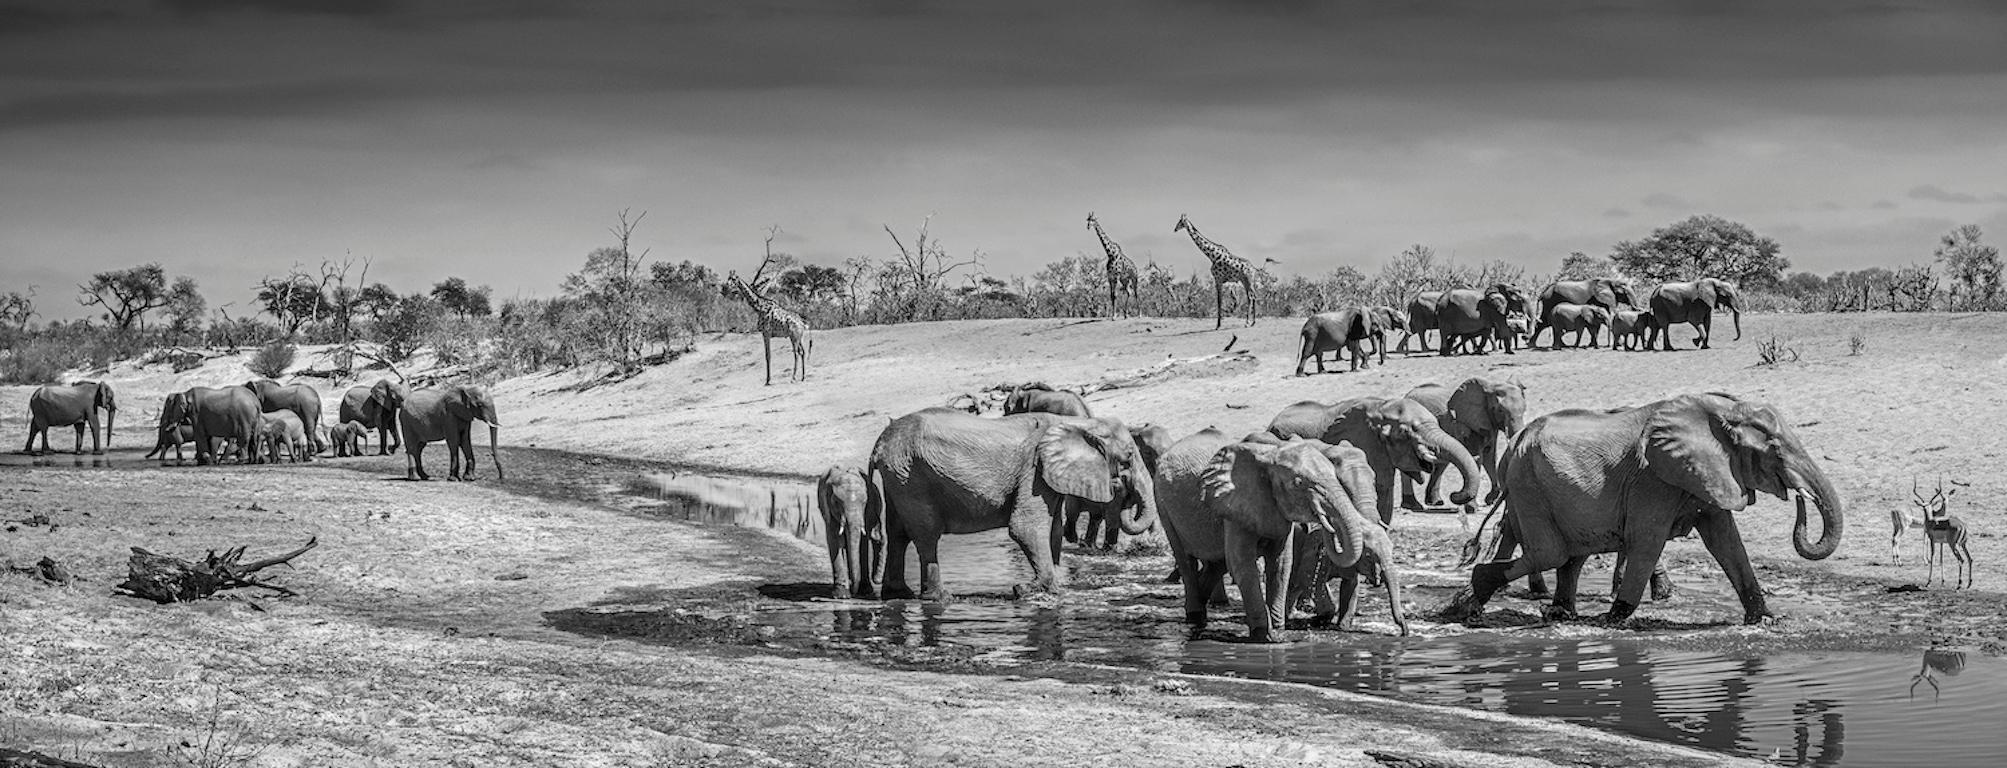 Before Men, Black and White Animal Photography